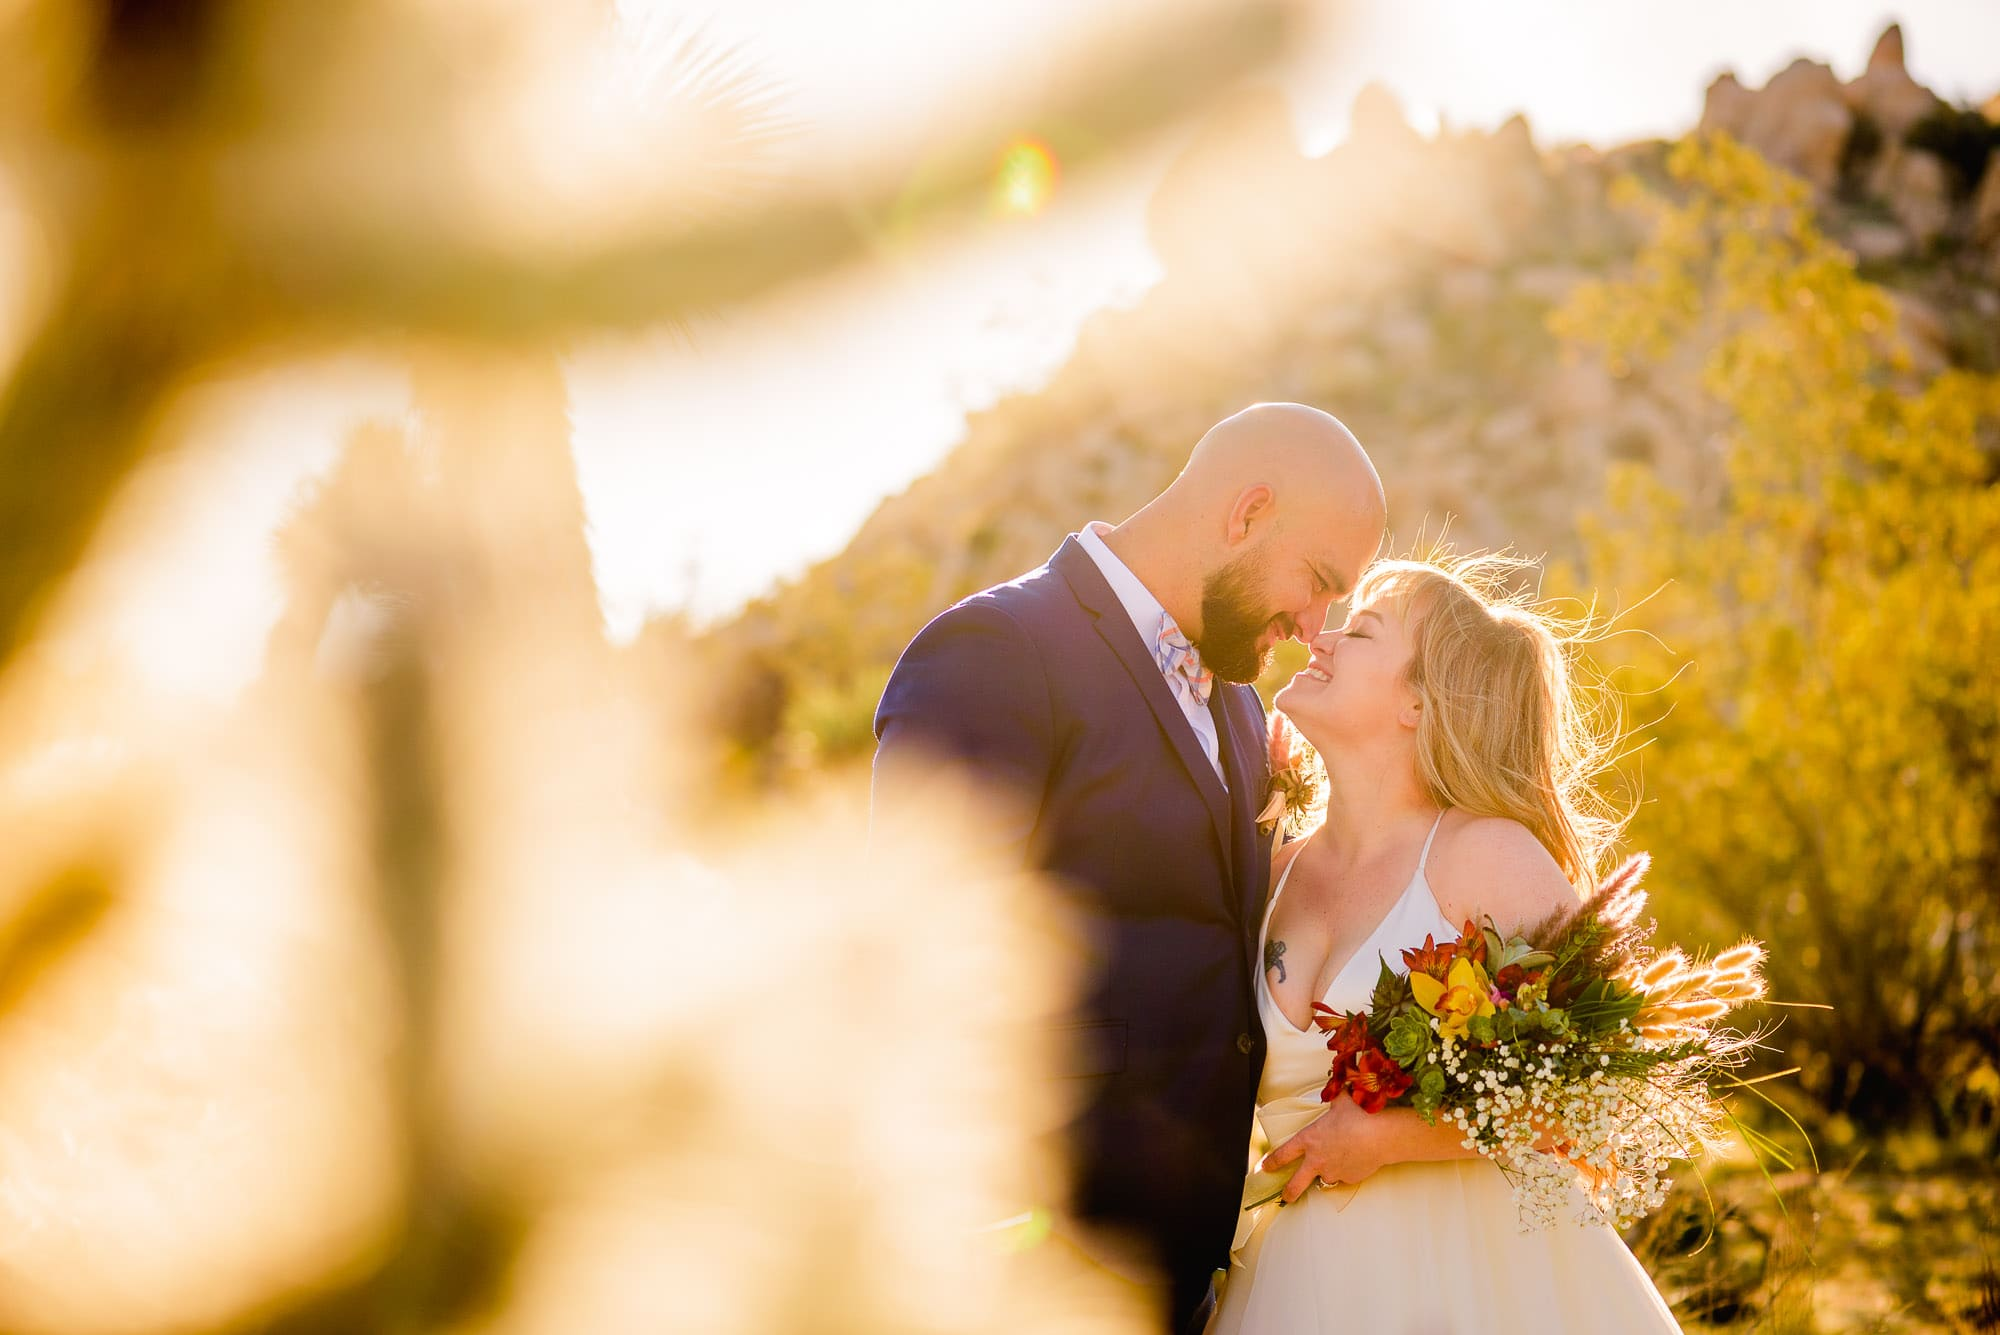 038_Alan_and_Heidi_Joshua_Tree_Spring_Elopement